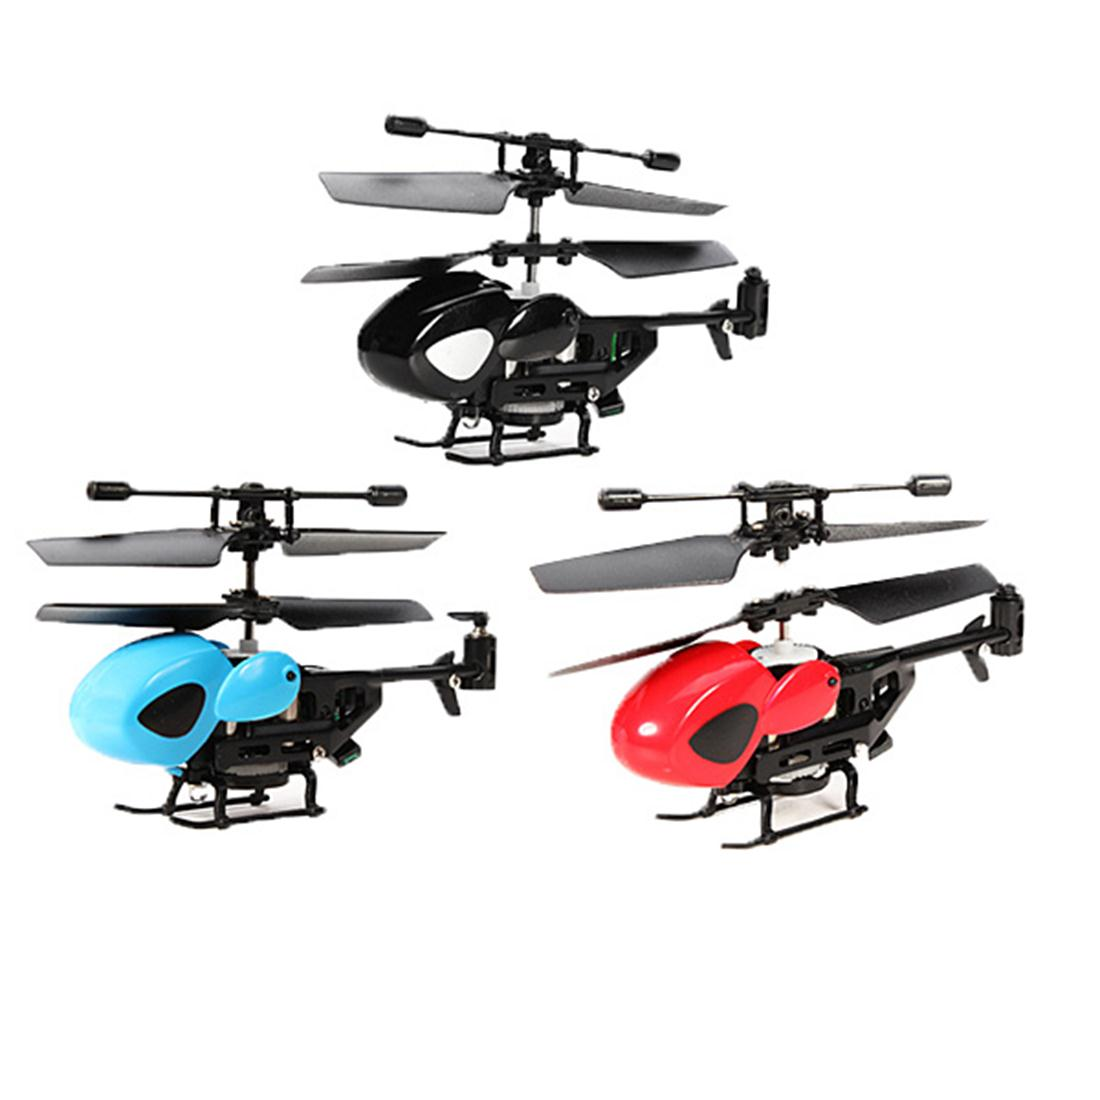 QS QS5013 2.5CH Mini Micro Remote Control RC Helicopter Cool Gadget Toy 4 Colors